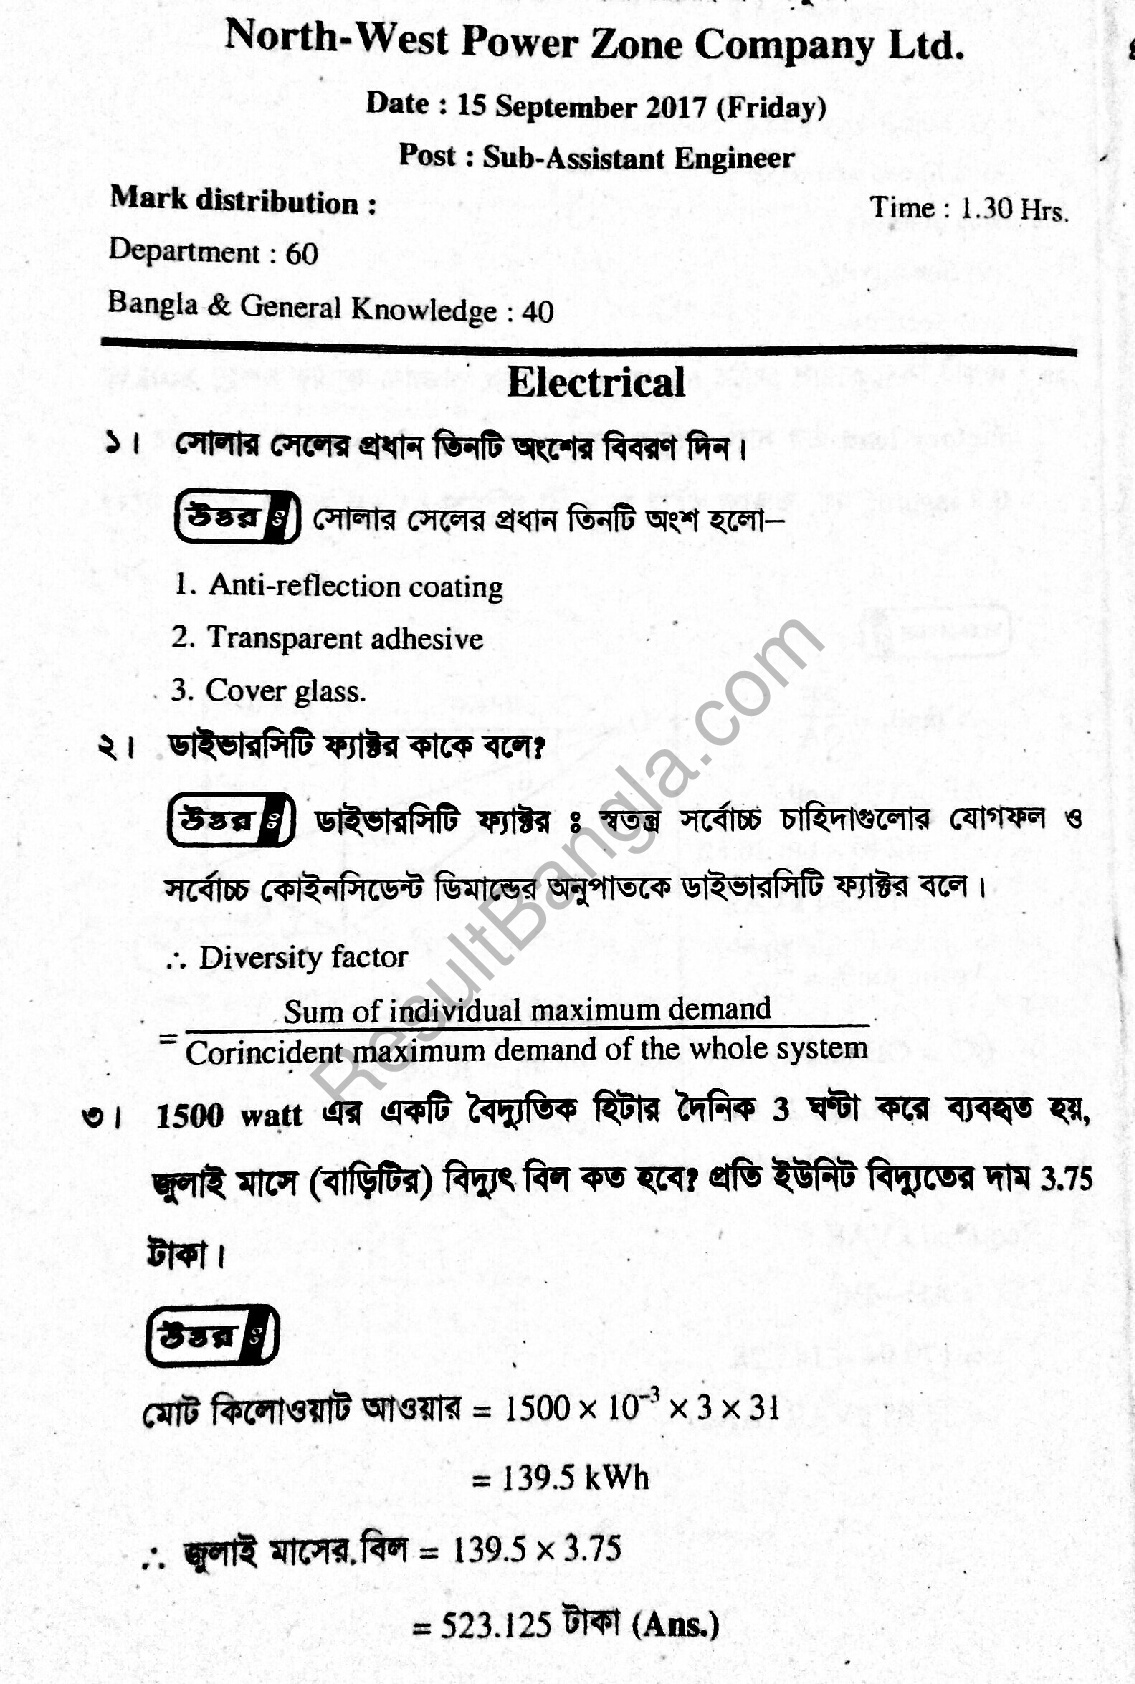 NWPZCL Job Question Solution 2017